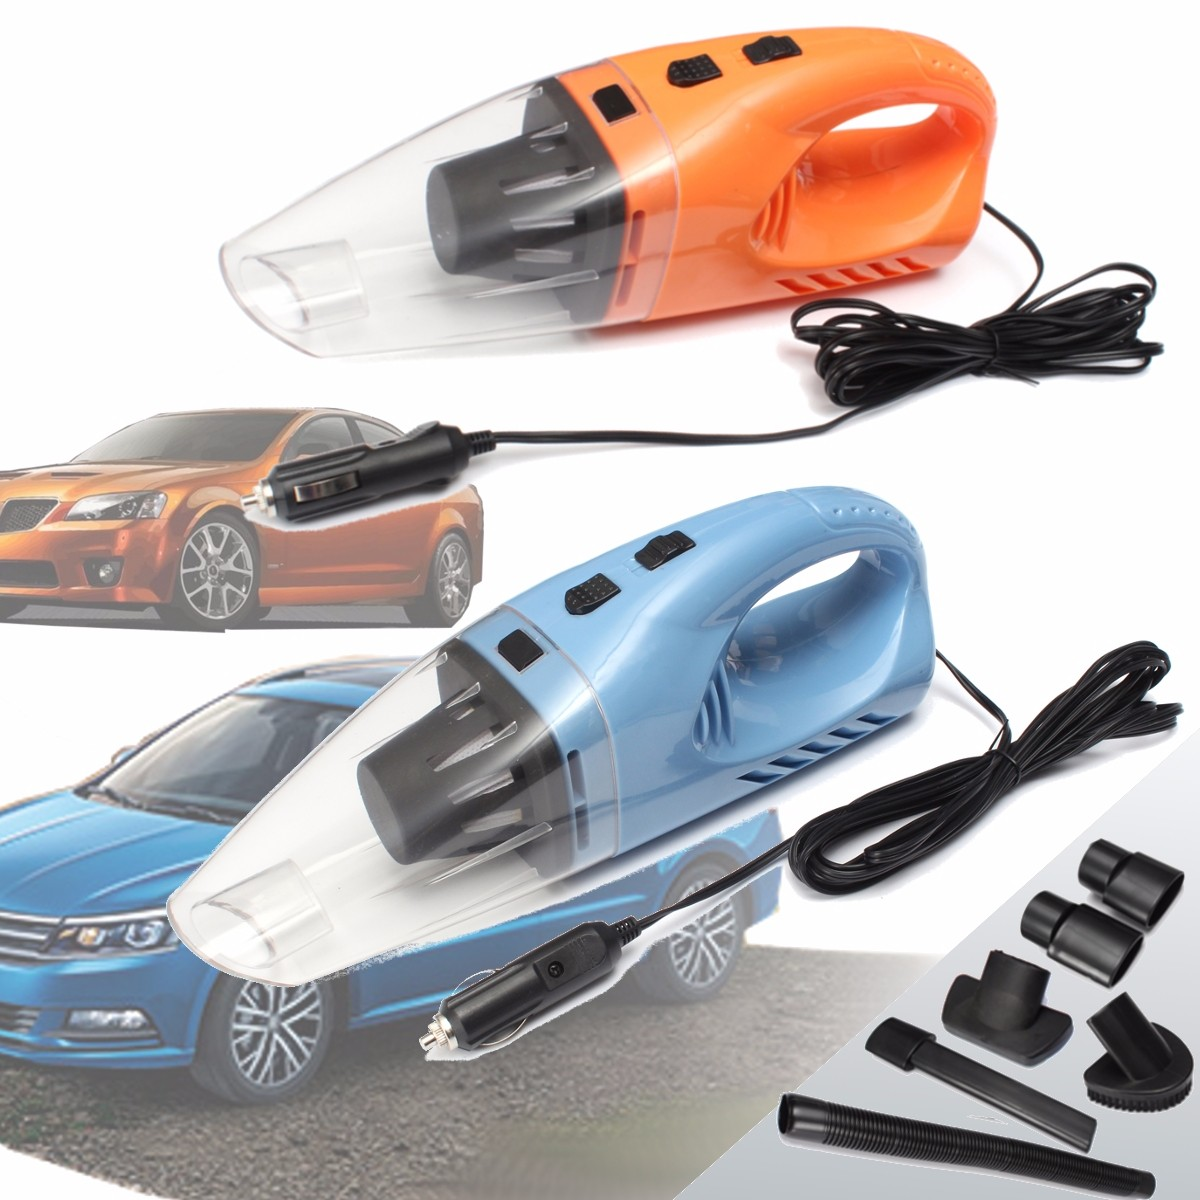 12V 120W Car Vacuum Cleaner Handheld Portable Wet Dry Vacuum Cleaner Autopflege Auto Dust Buster Hand Vacuum